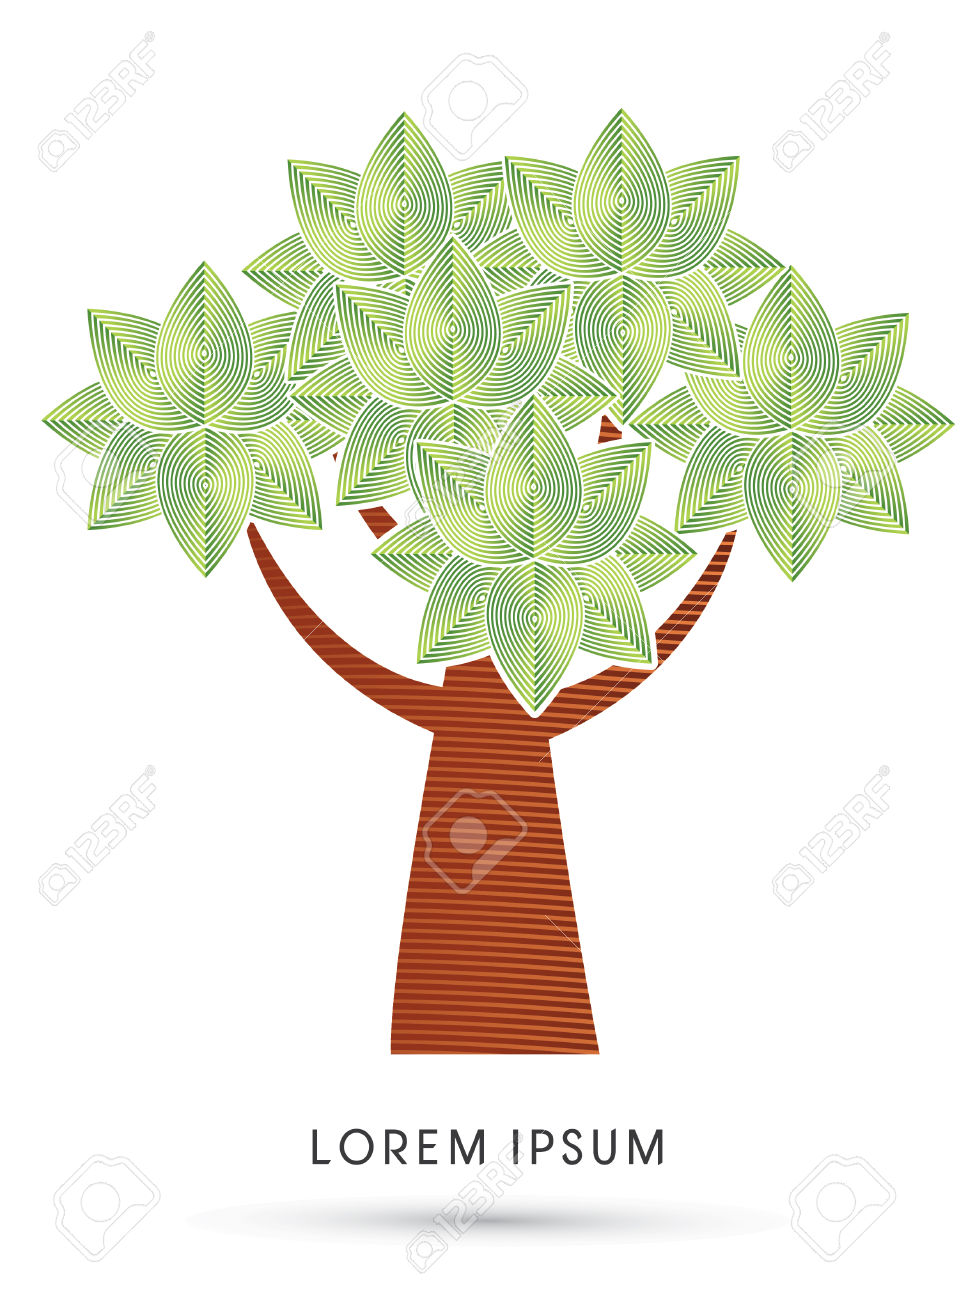 Modern Tree Leaf Designed Using Geometric Line Graphic Logo Symbol.